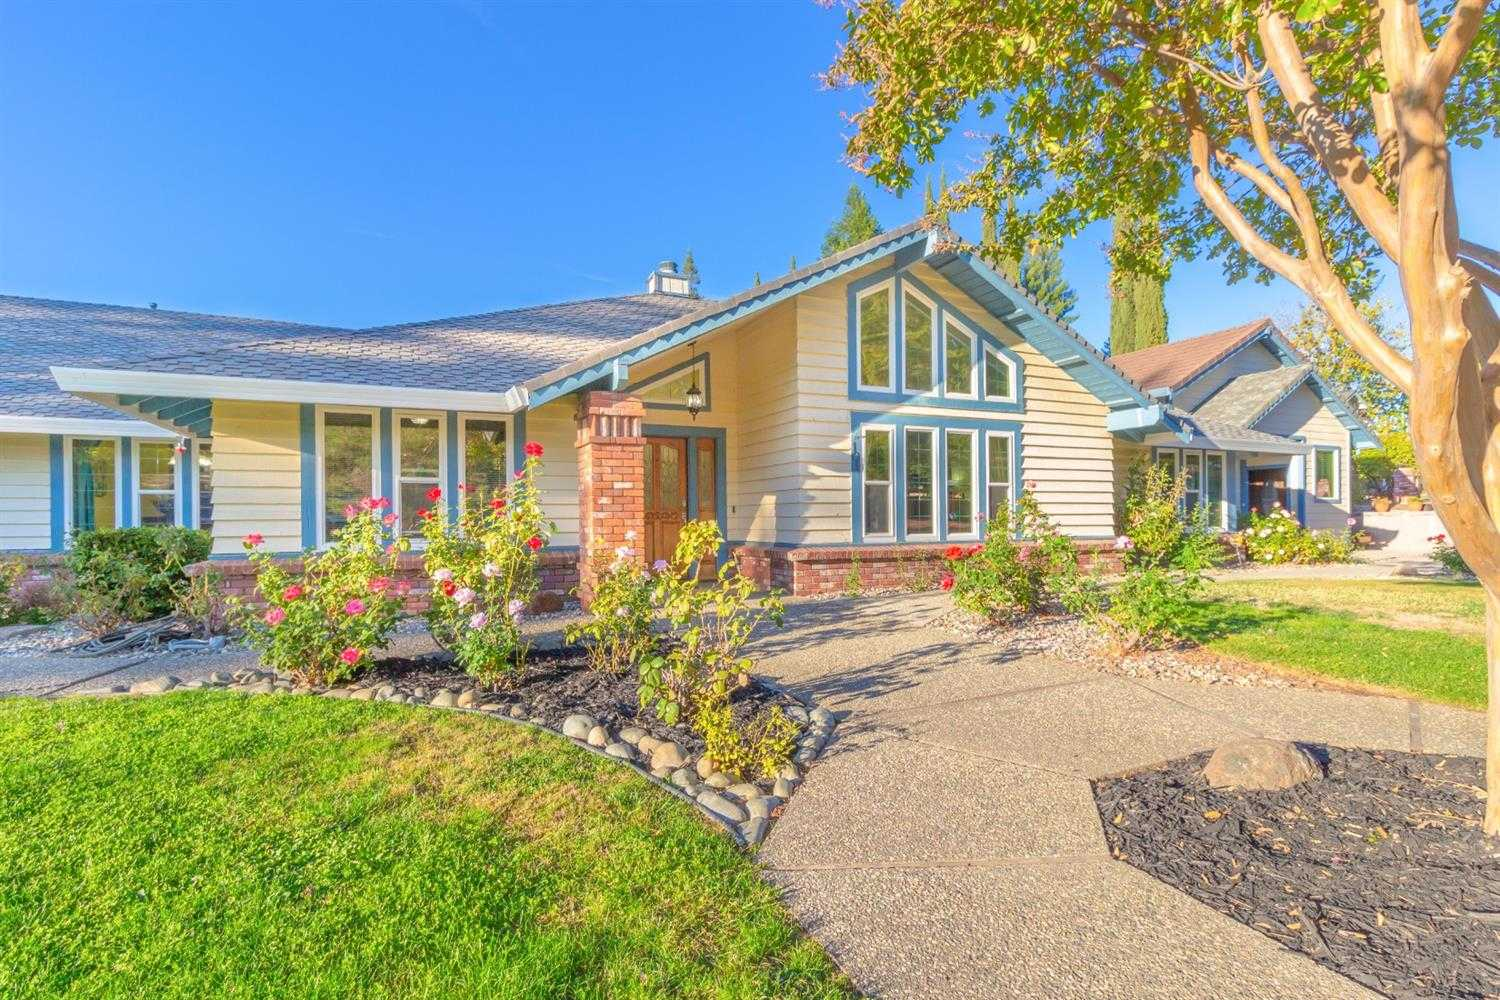 $850,000 - 5Br/3Ba -  for Sale in Folsom